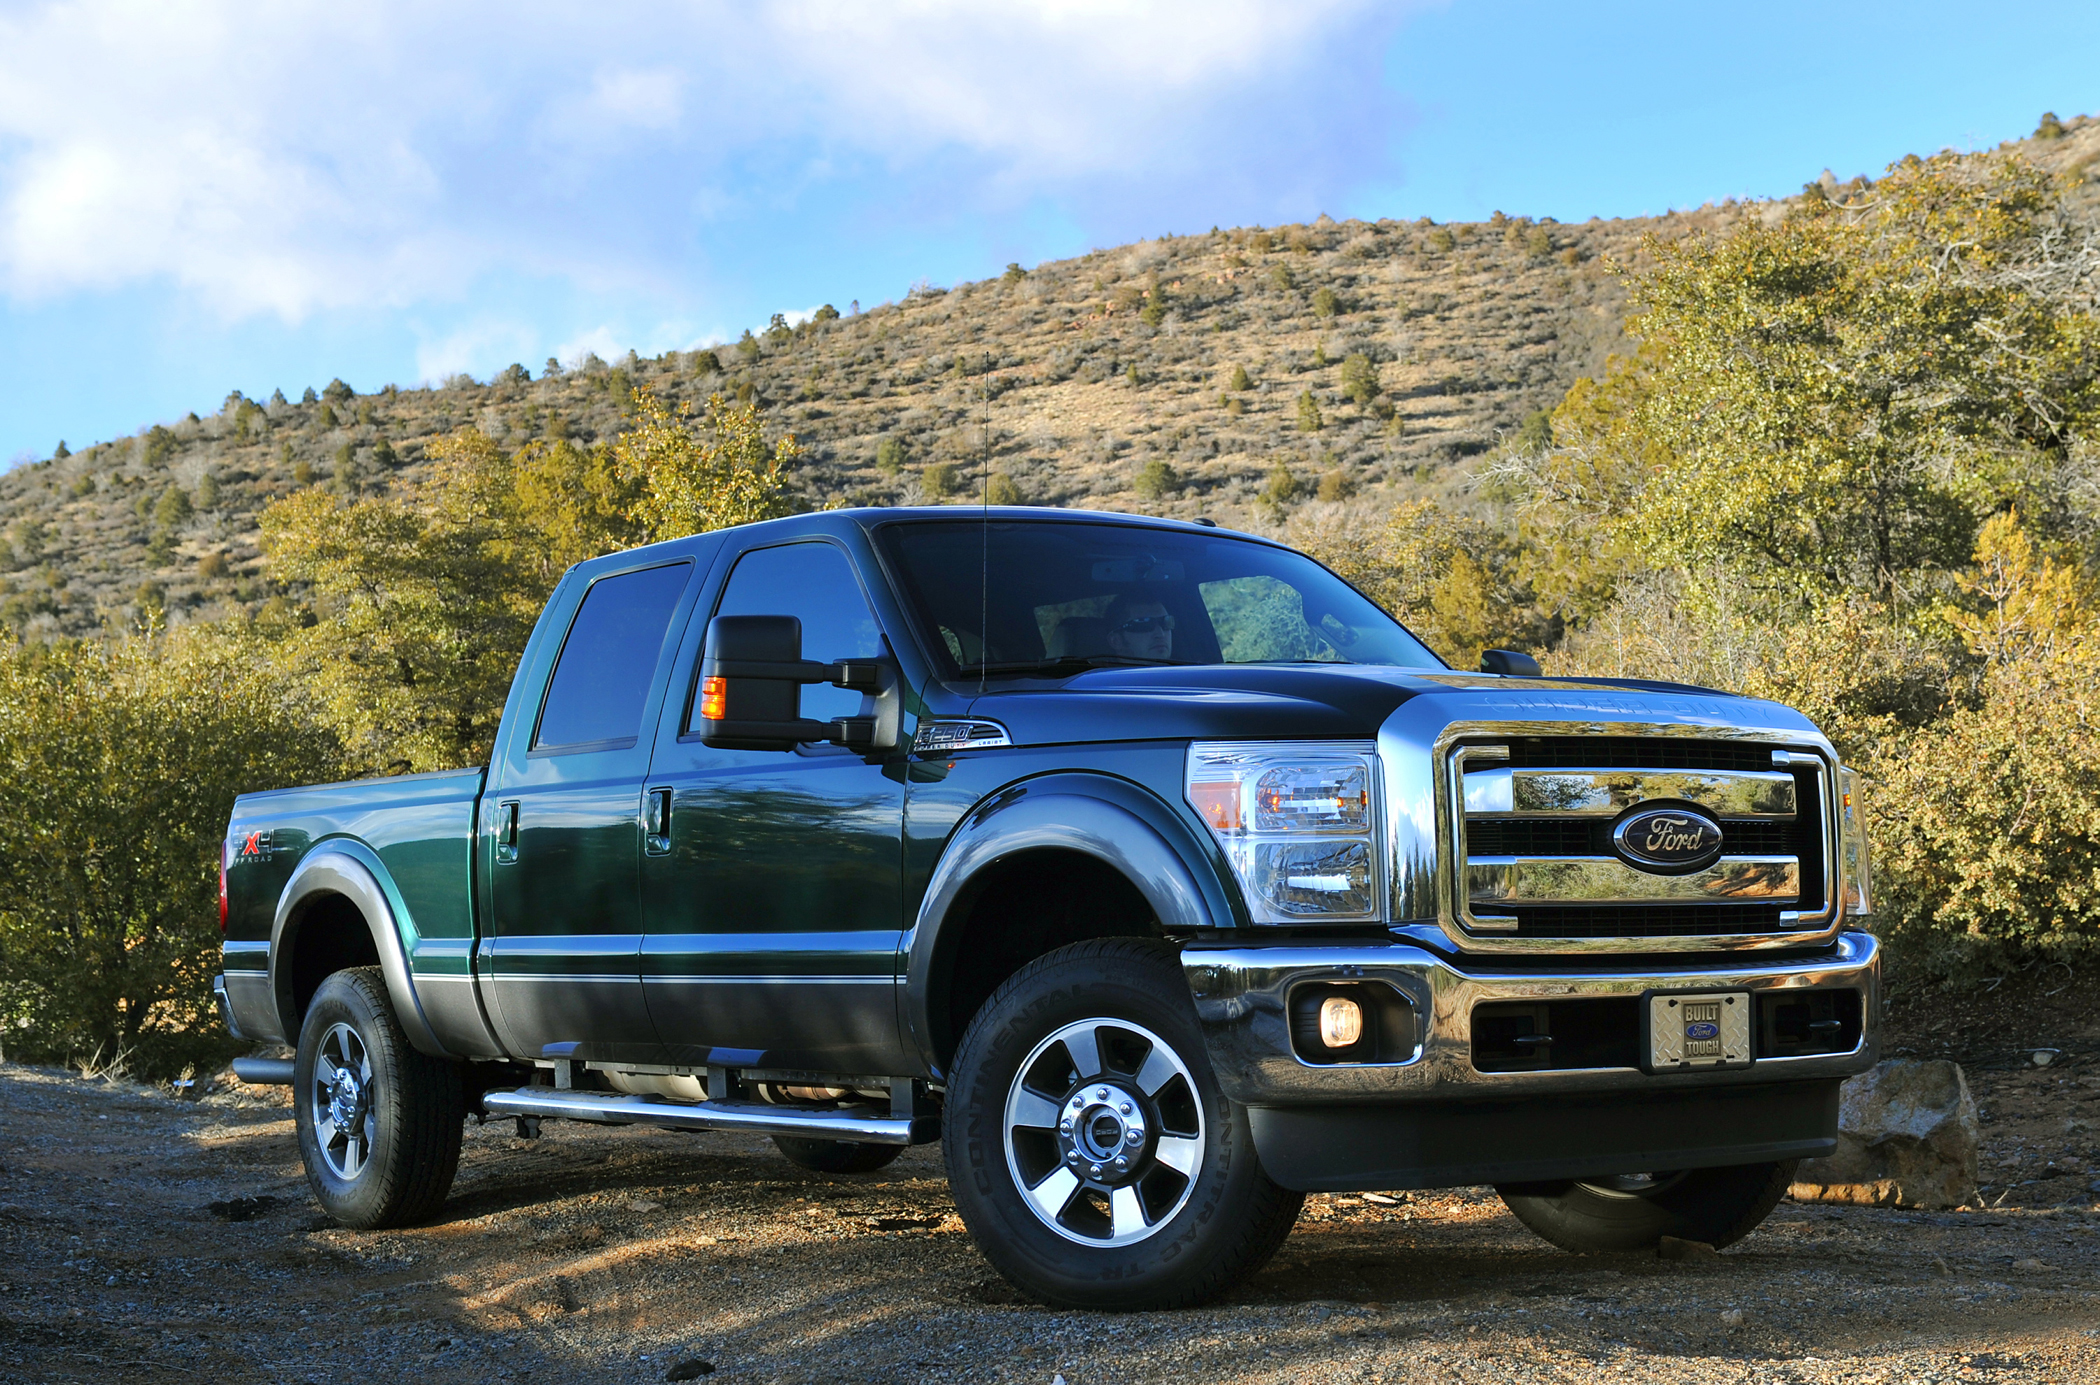 2011 ford f 250 king ranch the ultimate luxury tool new on wheels groovecar. Black Bedroom Furniture Sets. Home Design Ideas